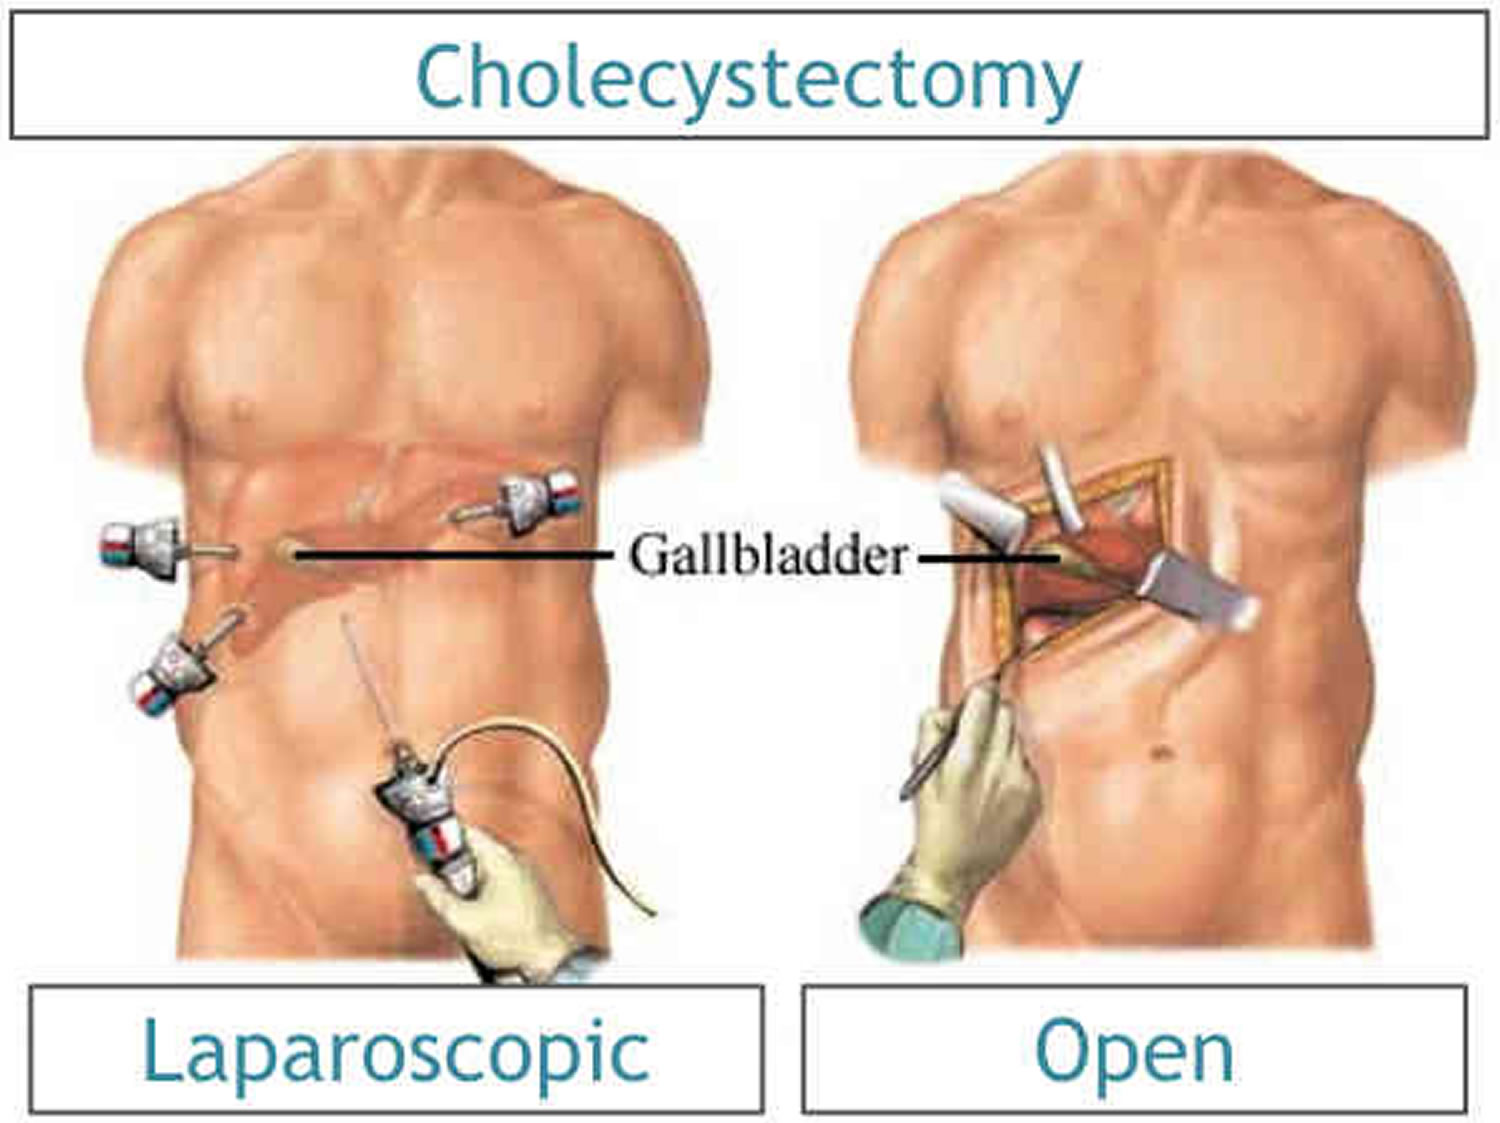 Whether to remove the gallbladder 22